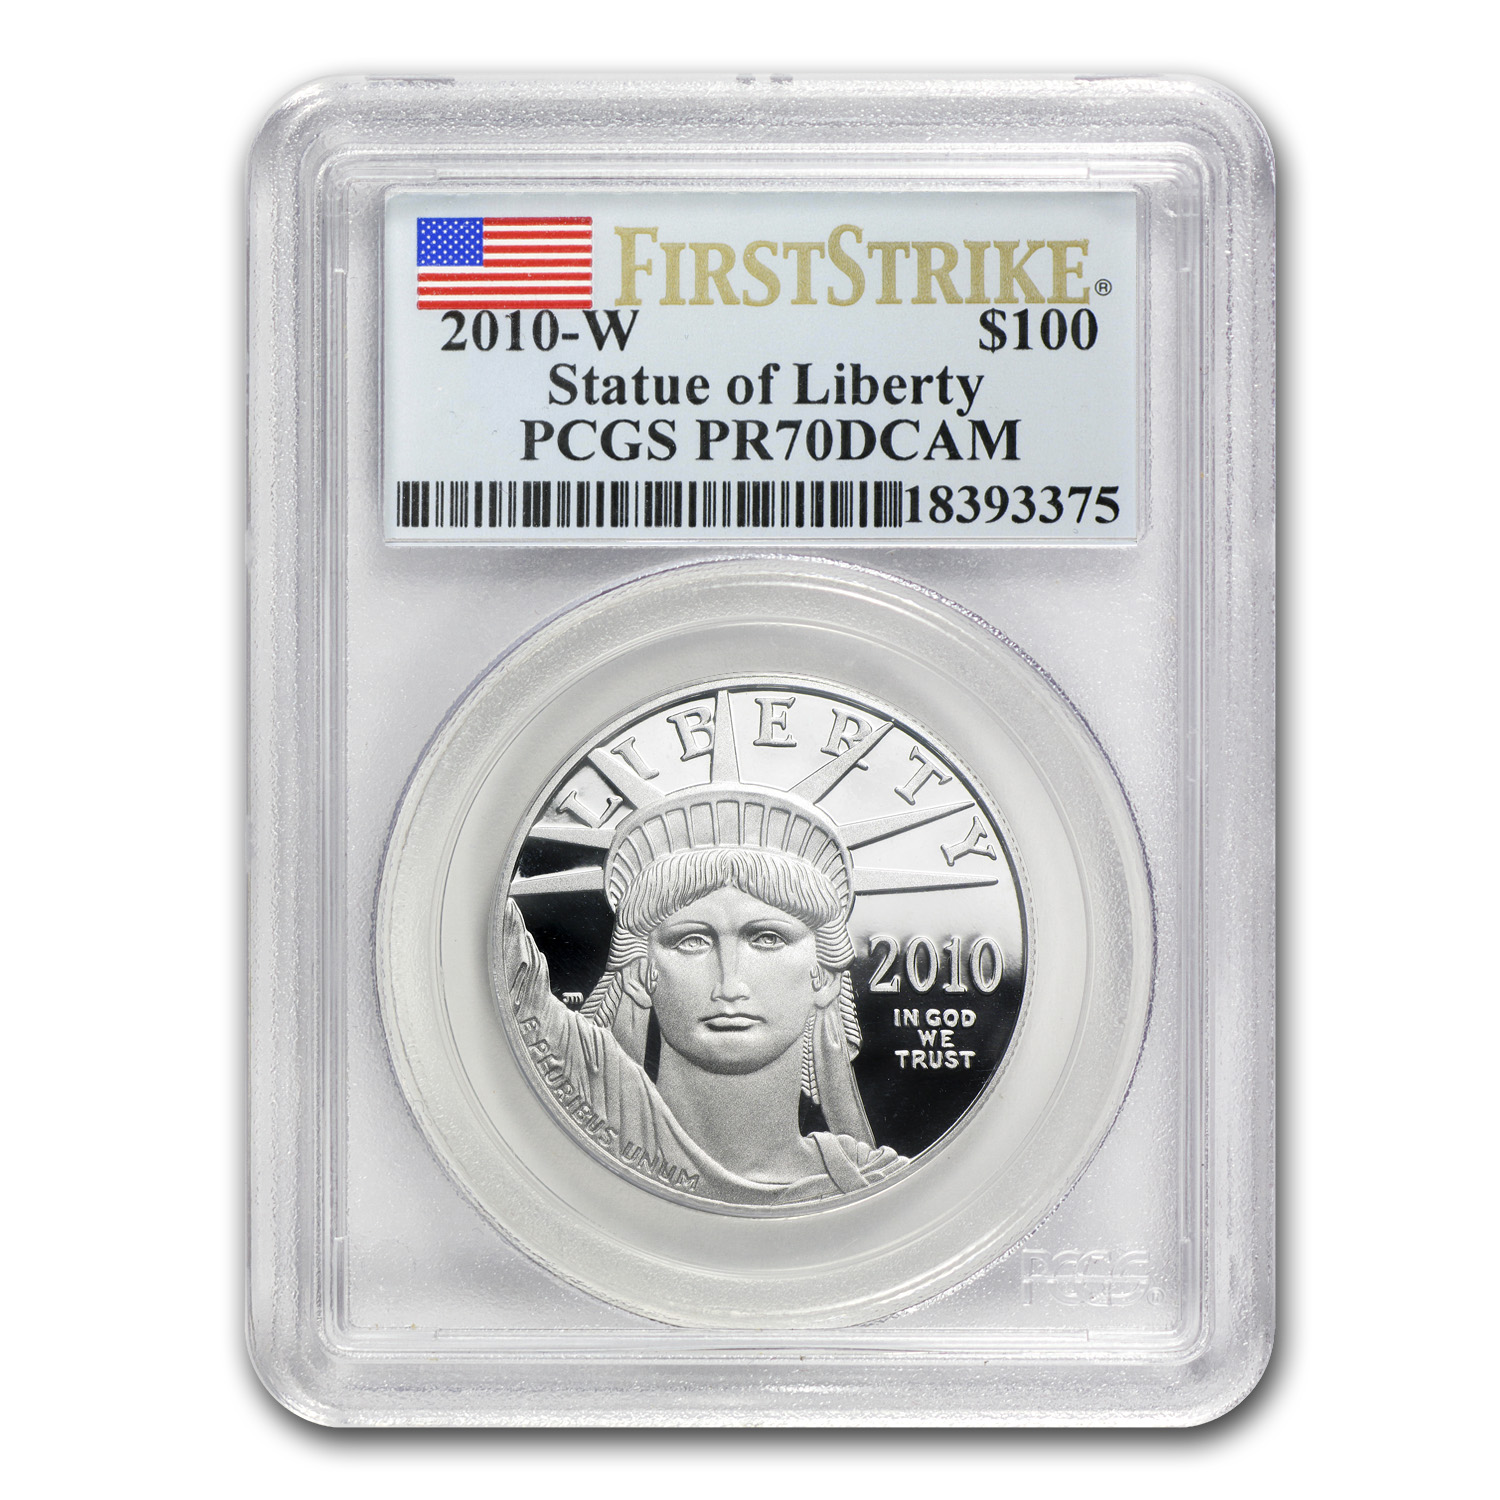 2010-W 1 oz Prf Platinum American Eagle PR-70 PCGS (First Strike)